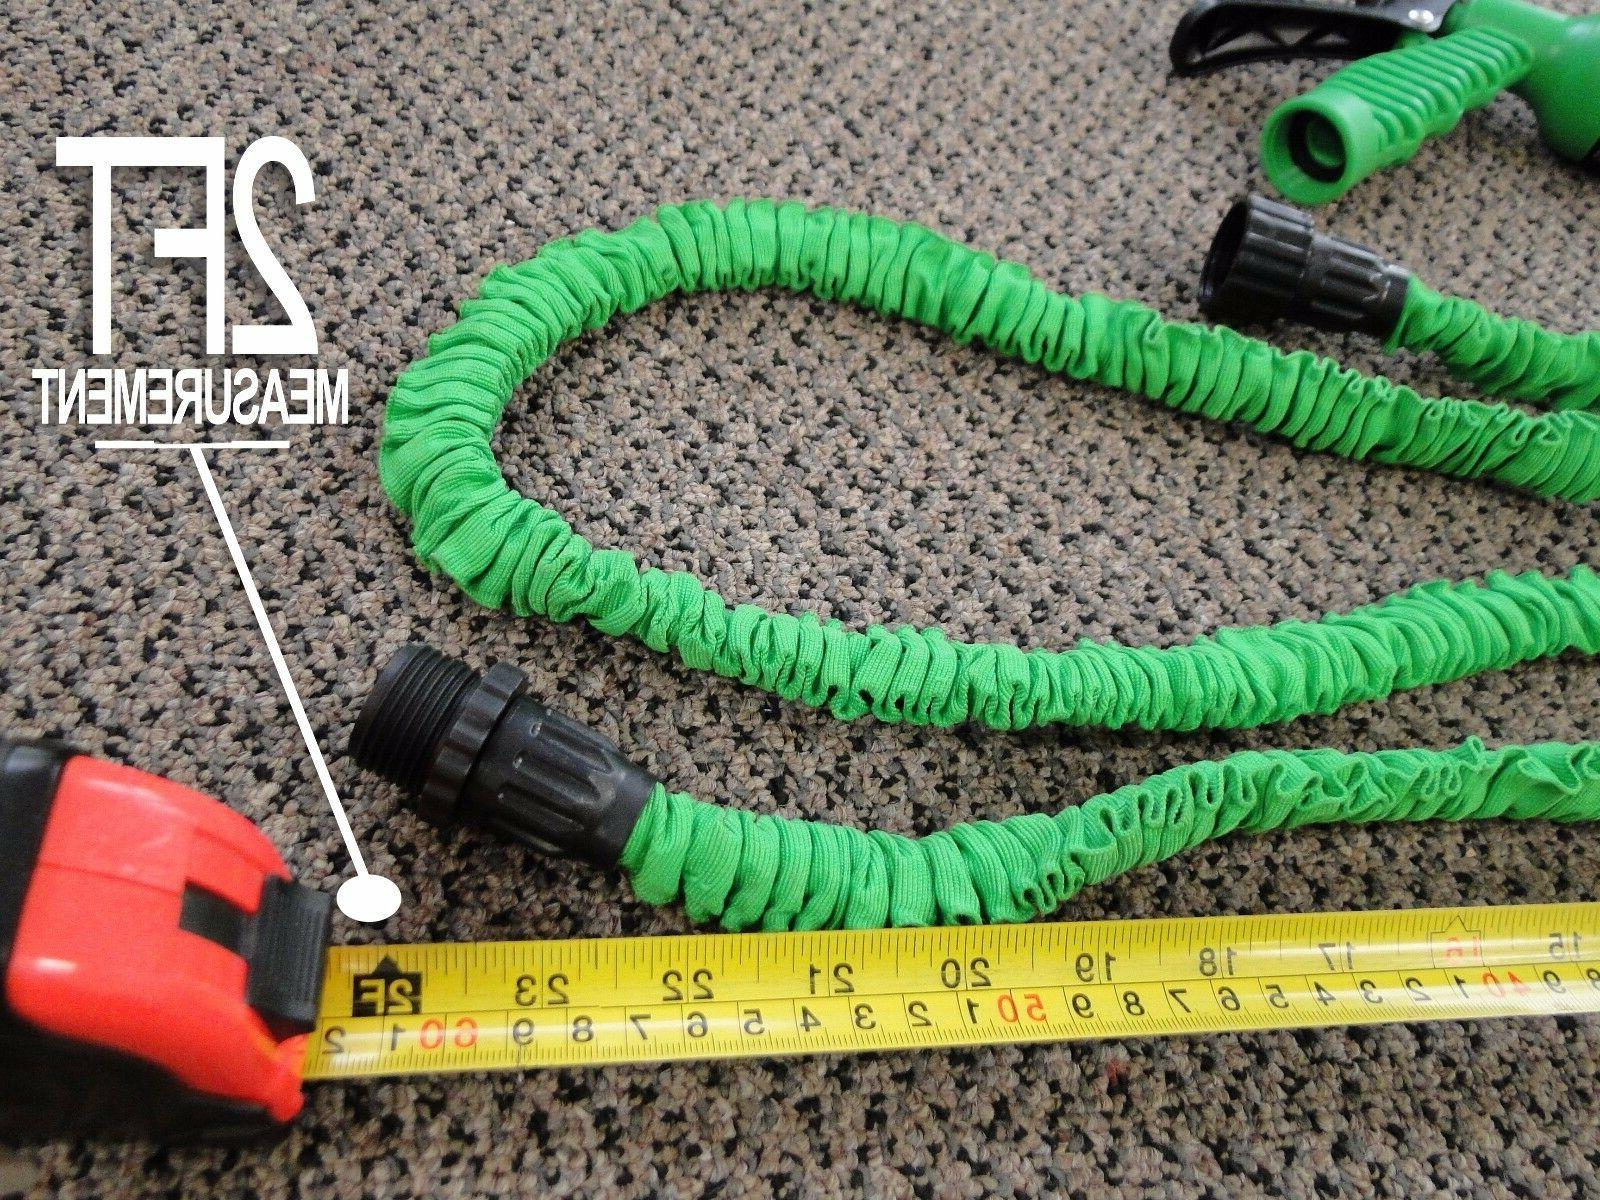 Latex 75 100 Garden Hose with Spray Nozzle